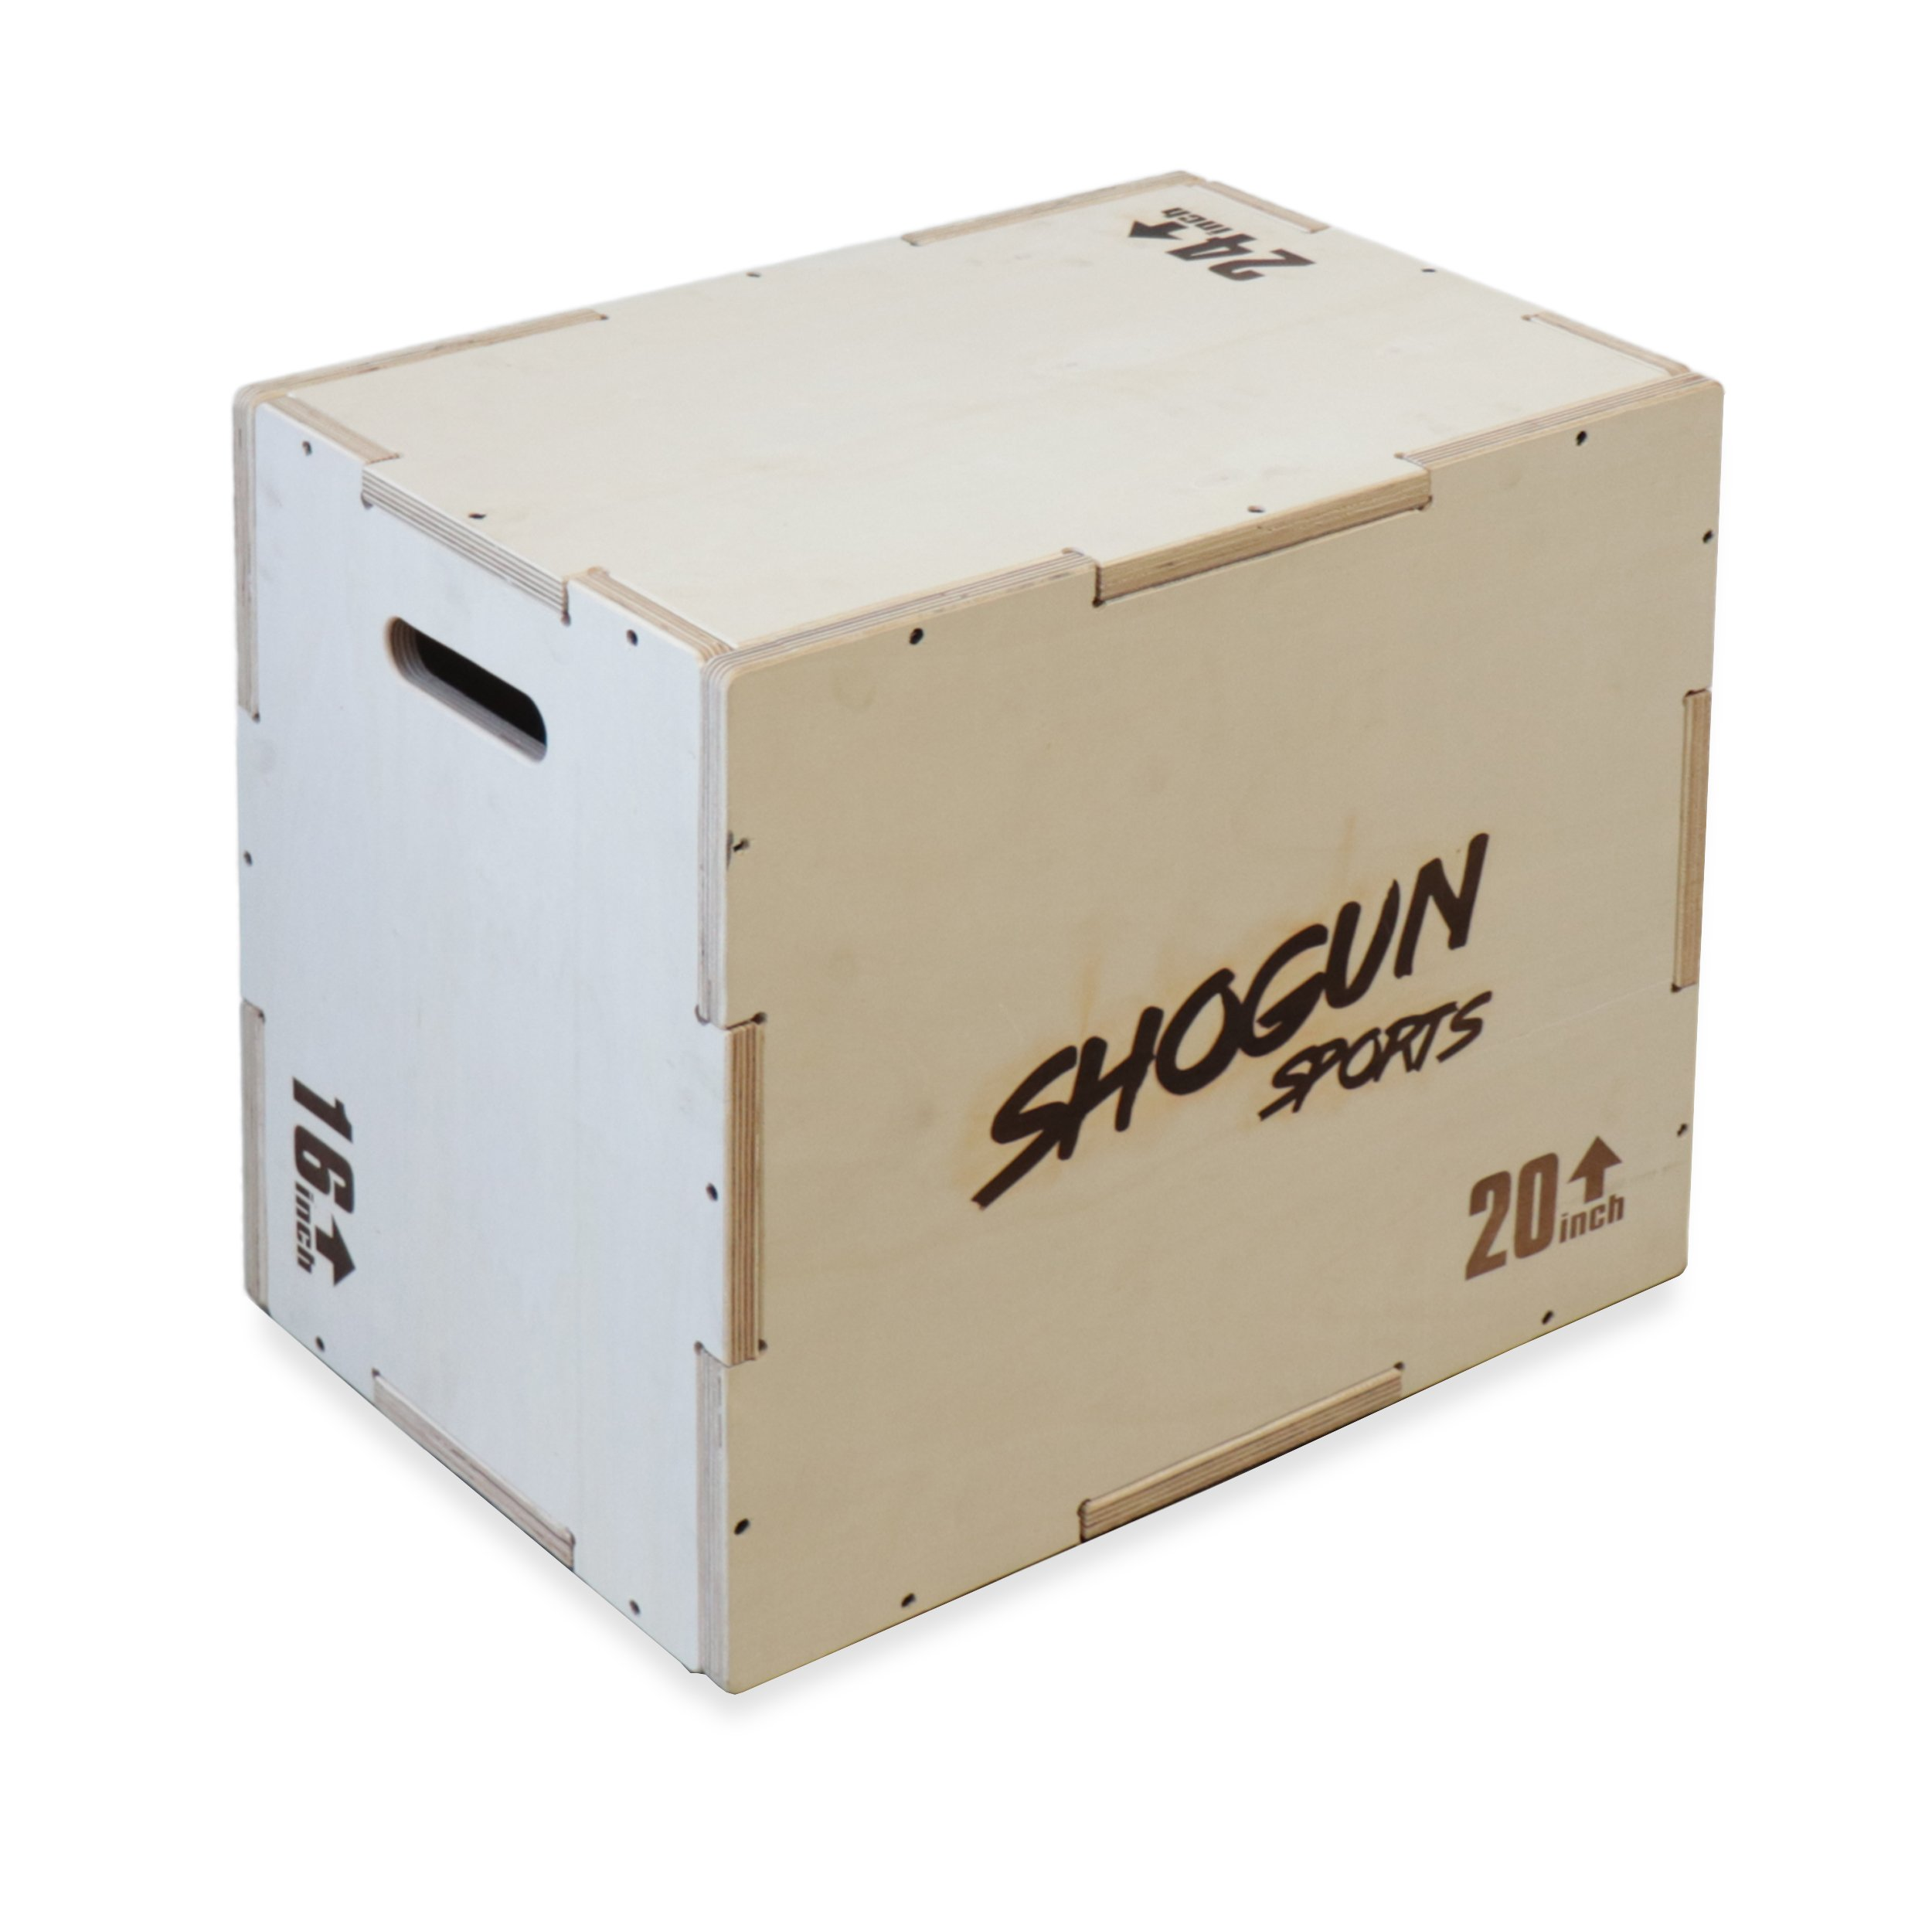 Shogun Sports 3 in 1 Wood Plyometric Box. Jump Box for Crossfit, MMA Conditioning and Strength Training. Available in 4 Sizes (30/24/20-24/20/16-20/18/16-16/14/12) (16/20/24)